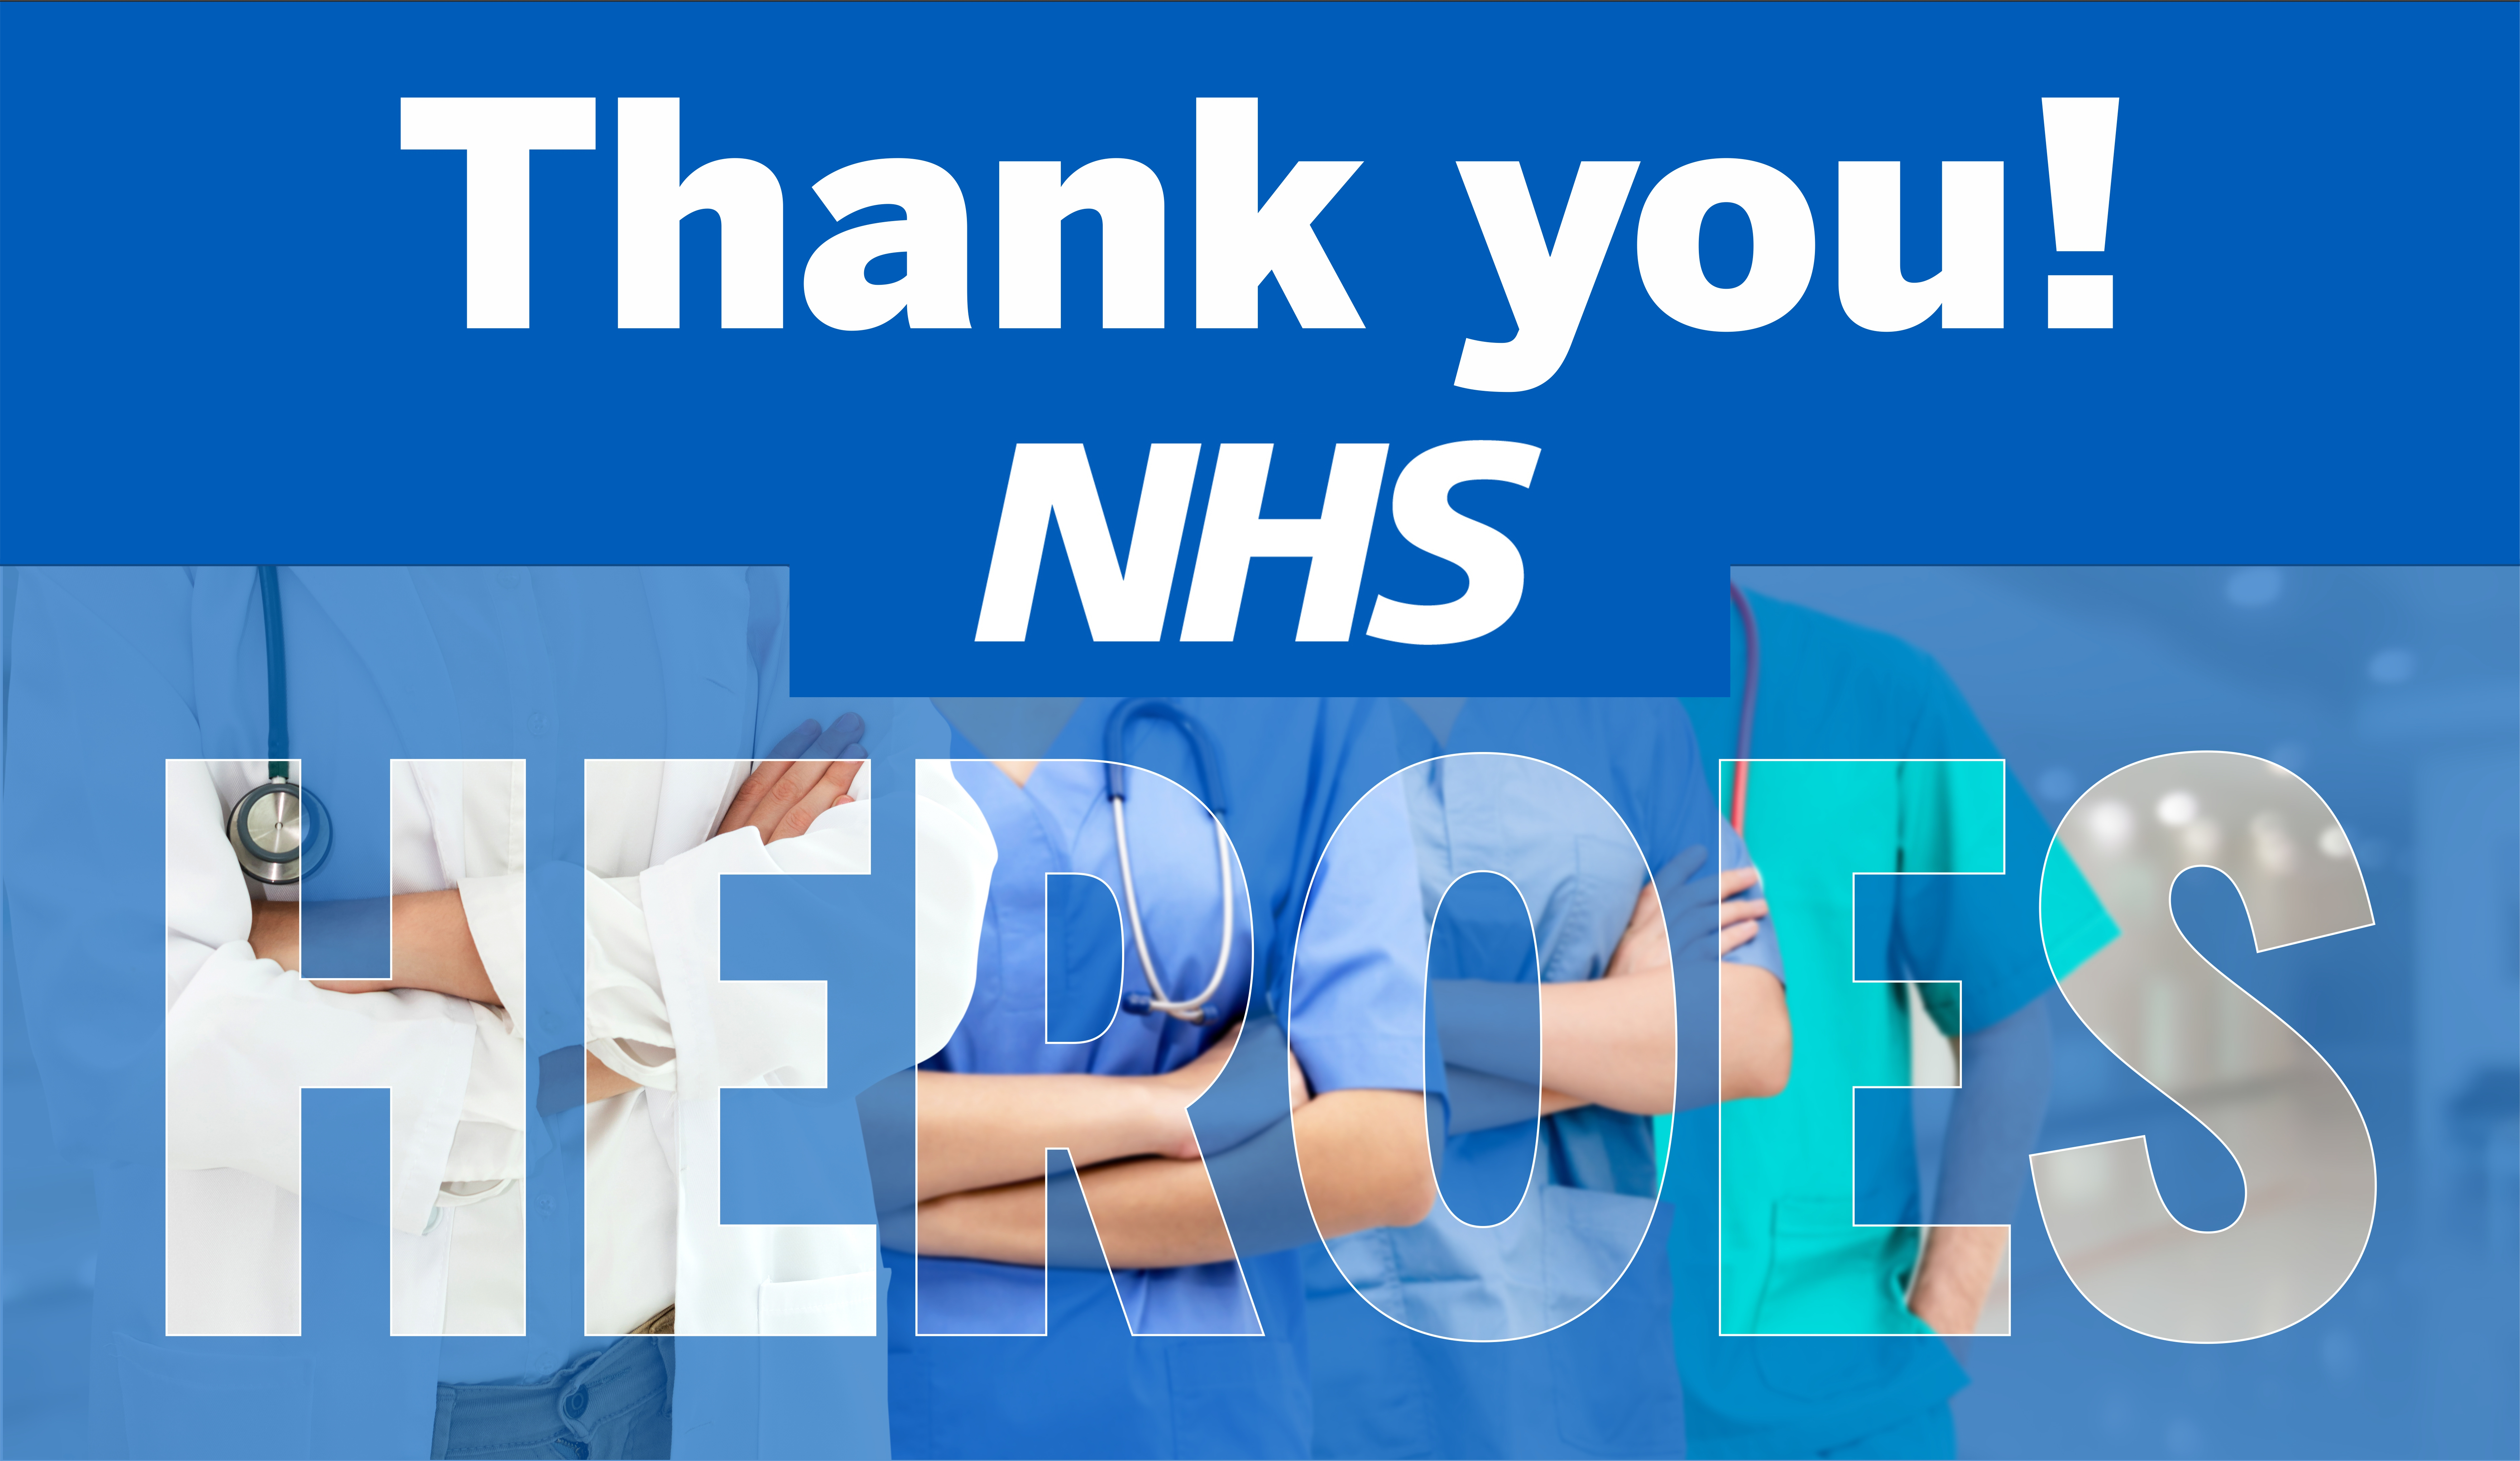 NHS Thank You message! Covid-19